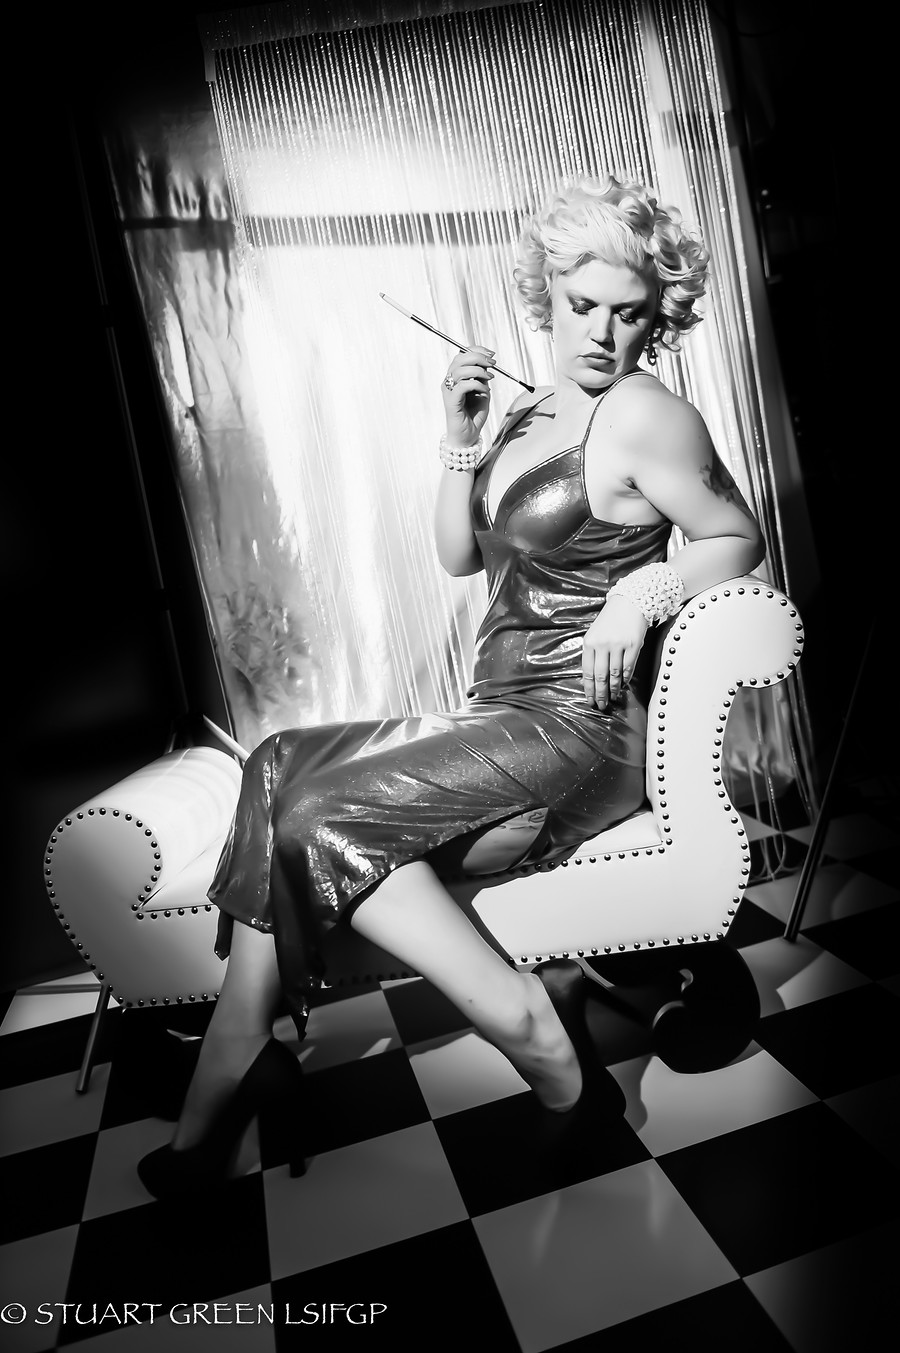 marilyn monroe style shoot / Photography by Stuart Green-Photography, Model Lelly D / Uploaded 9th July 2014 @ 08:26 PM